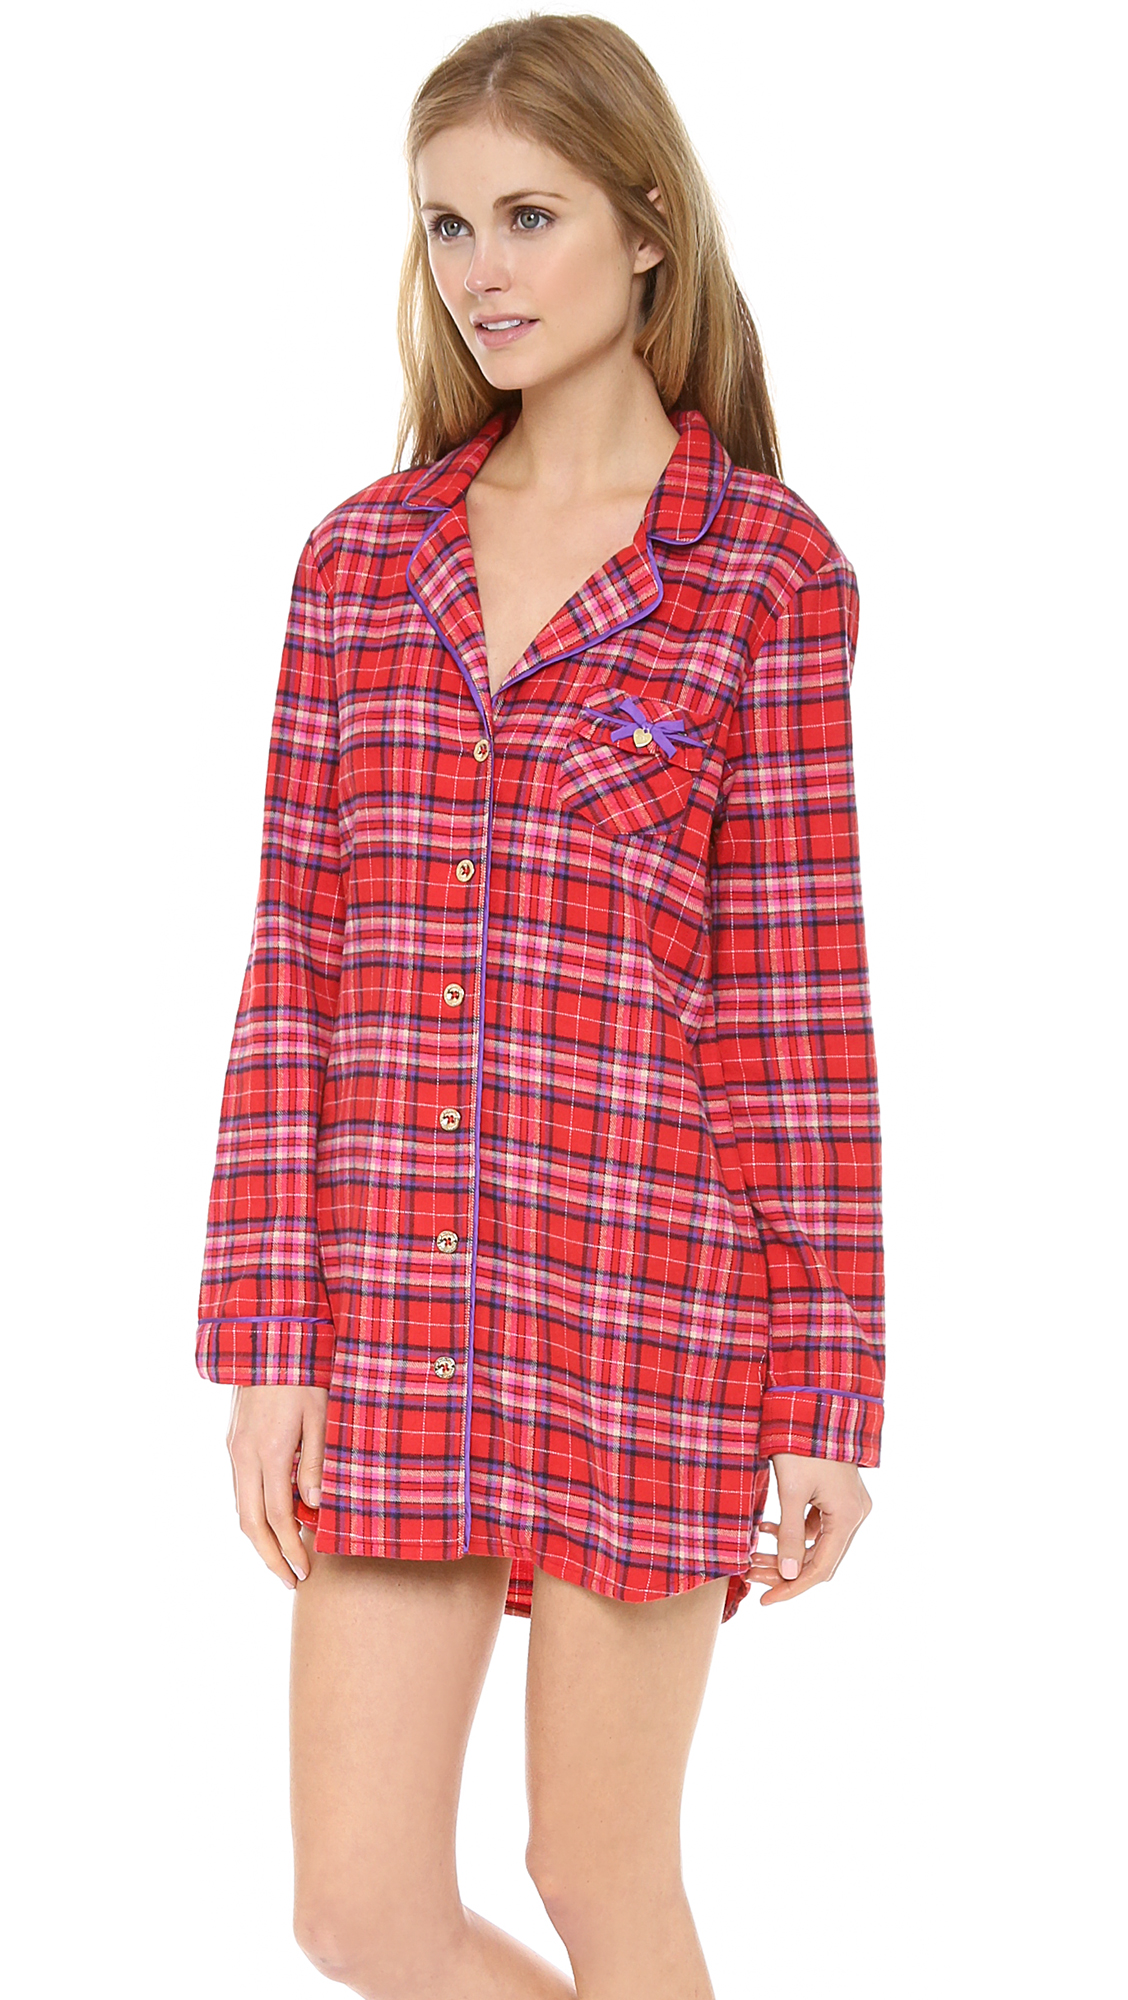 Juicy couture flannel nightshirt in red lyst for Womens flannel night shirts